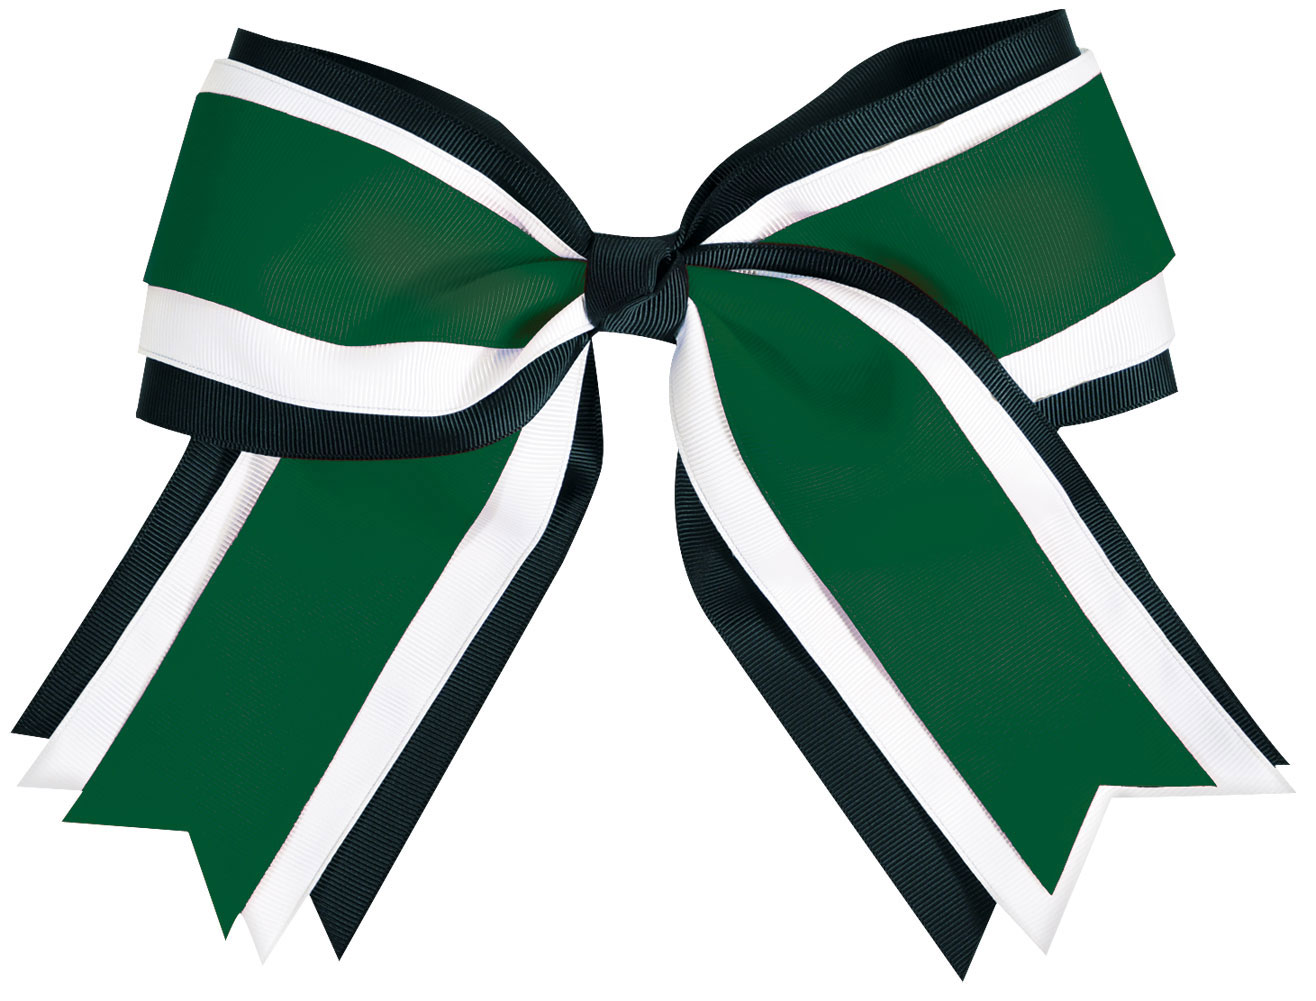 chass u00e9 u00ae jumbo 3 color hair bow omni cheer navy clip art images navy clip art paper